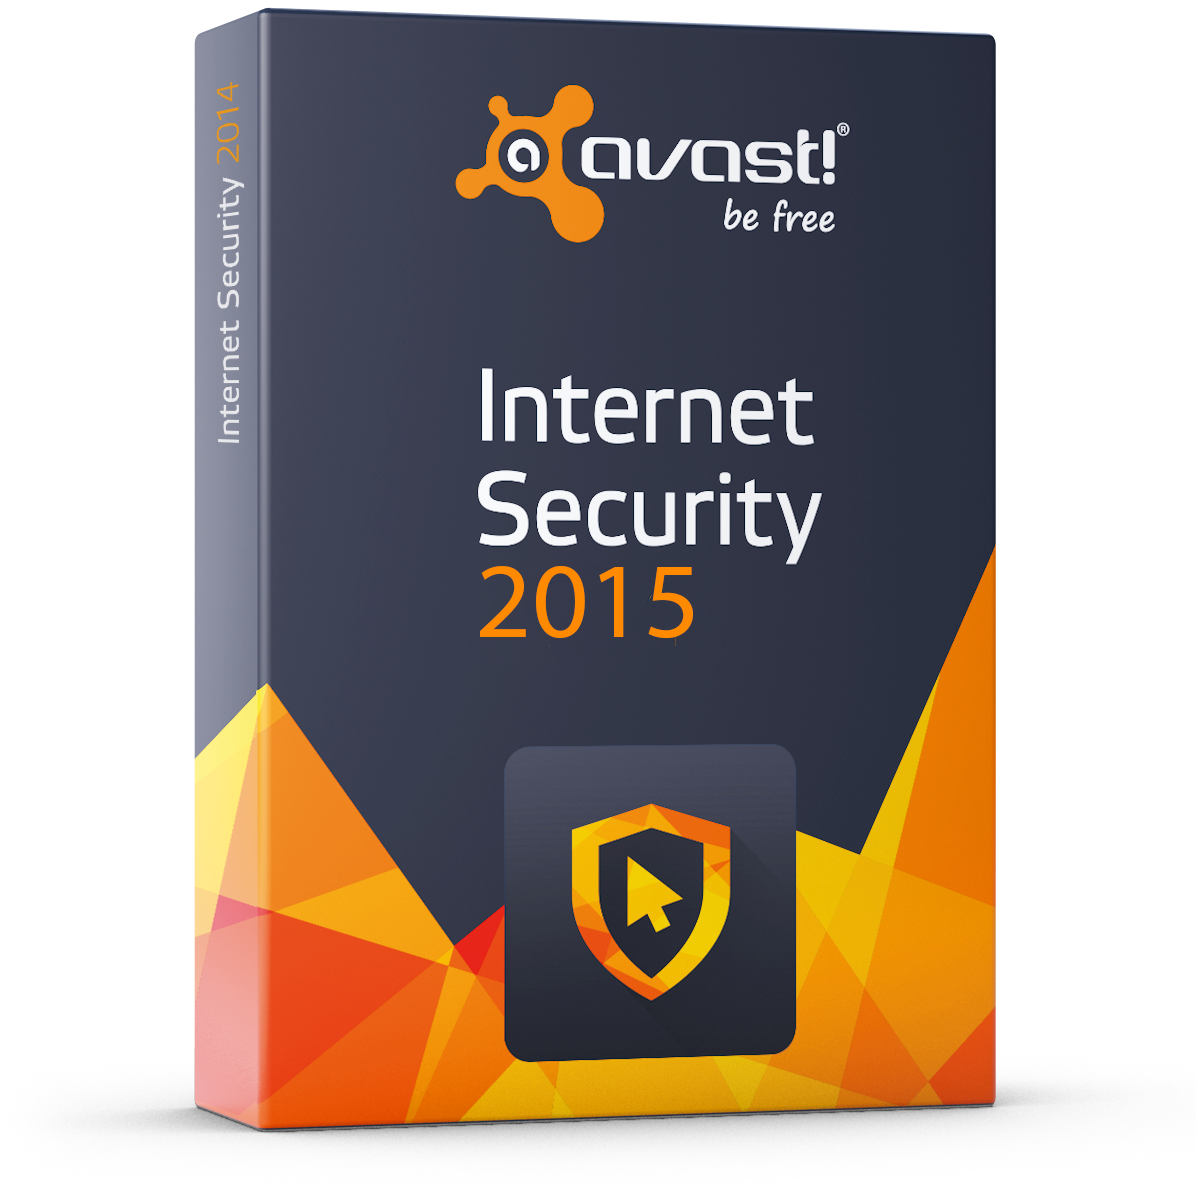 Avast Internet Security 2015 v.10.3.2216.980 Final x86/x64 Multi AvastIS